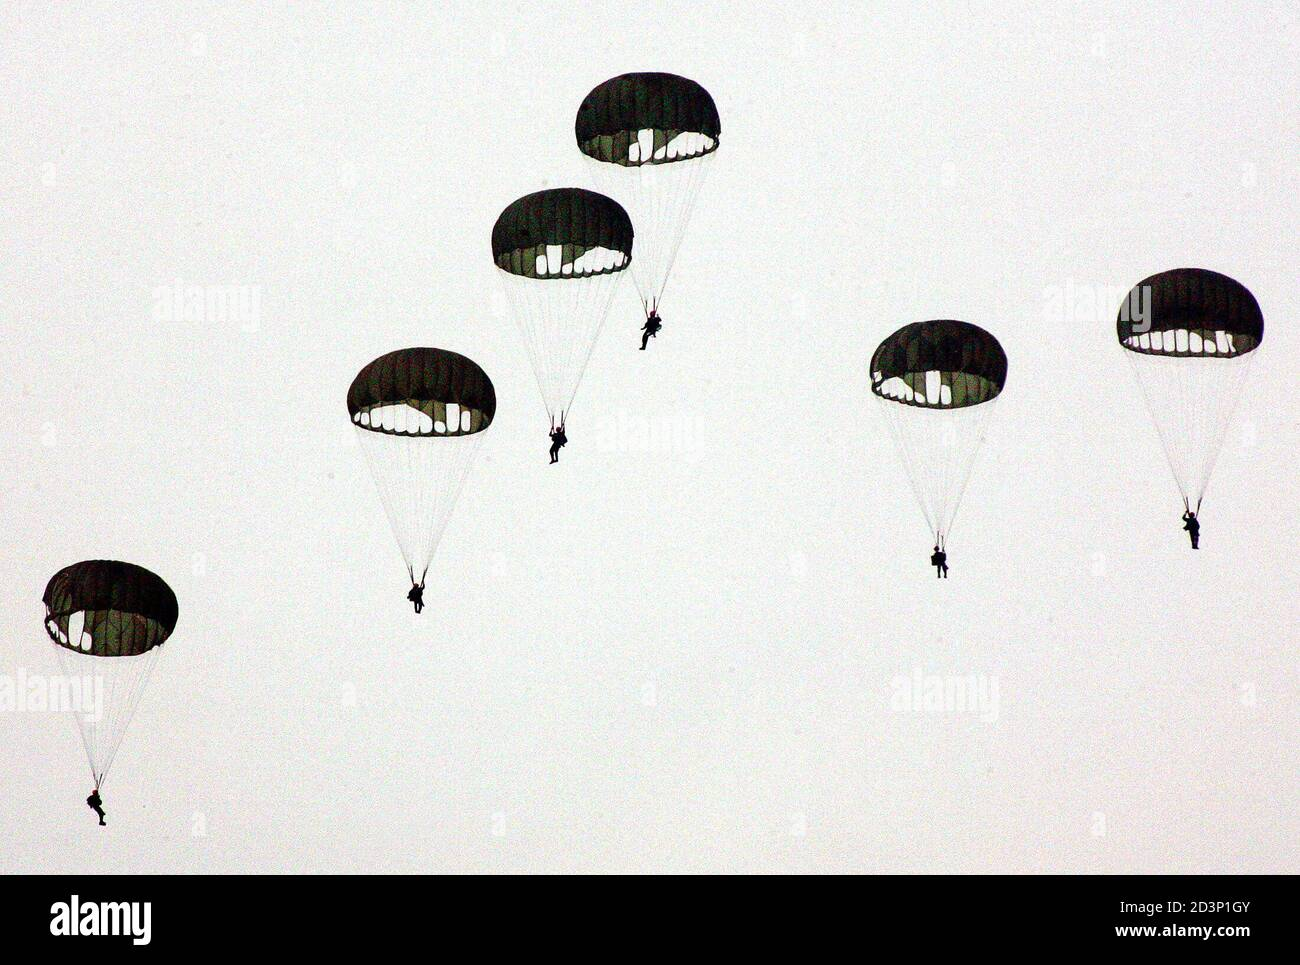 """Parachutes prepare to land during an anti-airborne military exercise at the CCK air base in Taichung, central Taiwan, July 27, 2005. The military exercise, involving simulated repulsion of airborne assaults on an airbase, is part of Taiwan's annual """"Han Kuang"""", or Chinese Glory, exercises aimed at testing the military's readiness against a Chinese invasion. Taiwan President Chen Shui-bian warned on Tuesday that arch-rival China's growing missile build-up not only posed a threat to his democratic island, but also endangered the world. REUTERS/Richard Chung  AH/PN Stock Photo"""